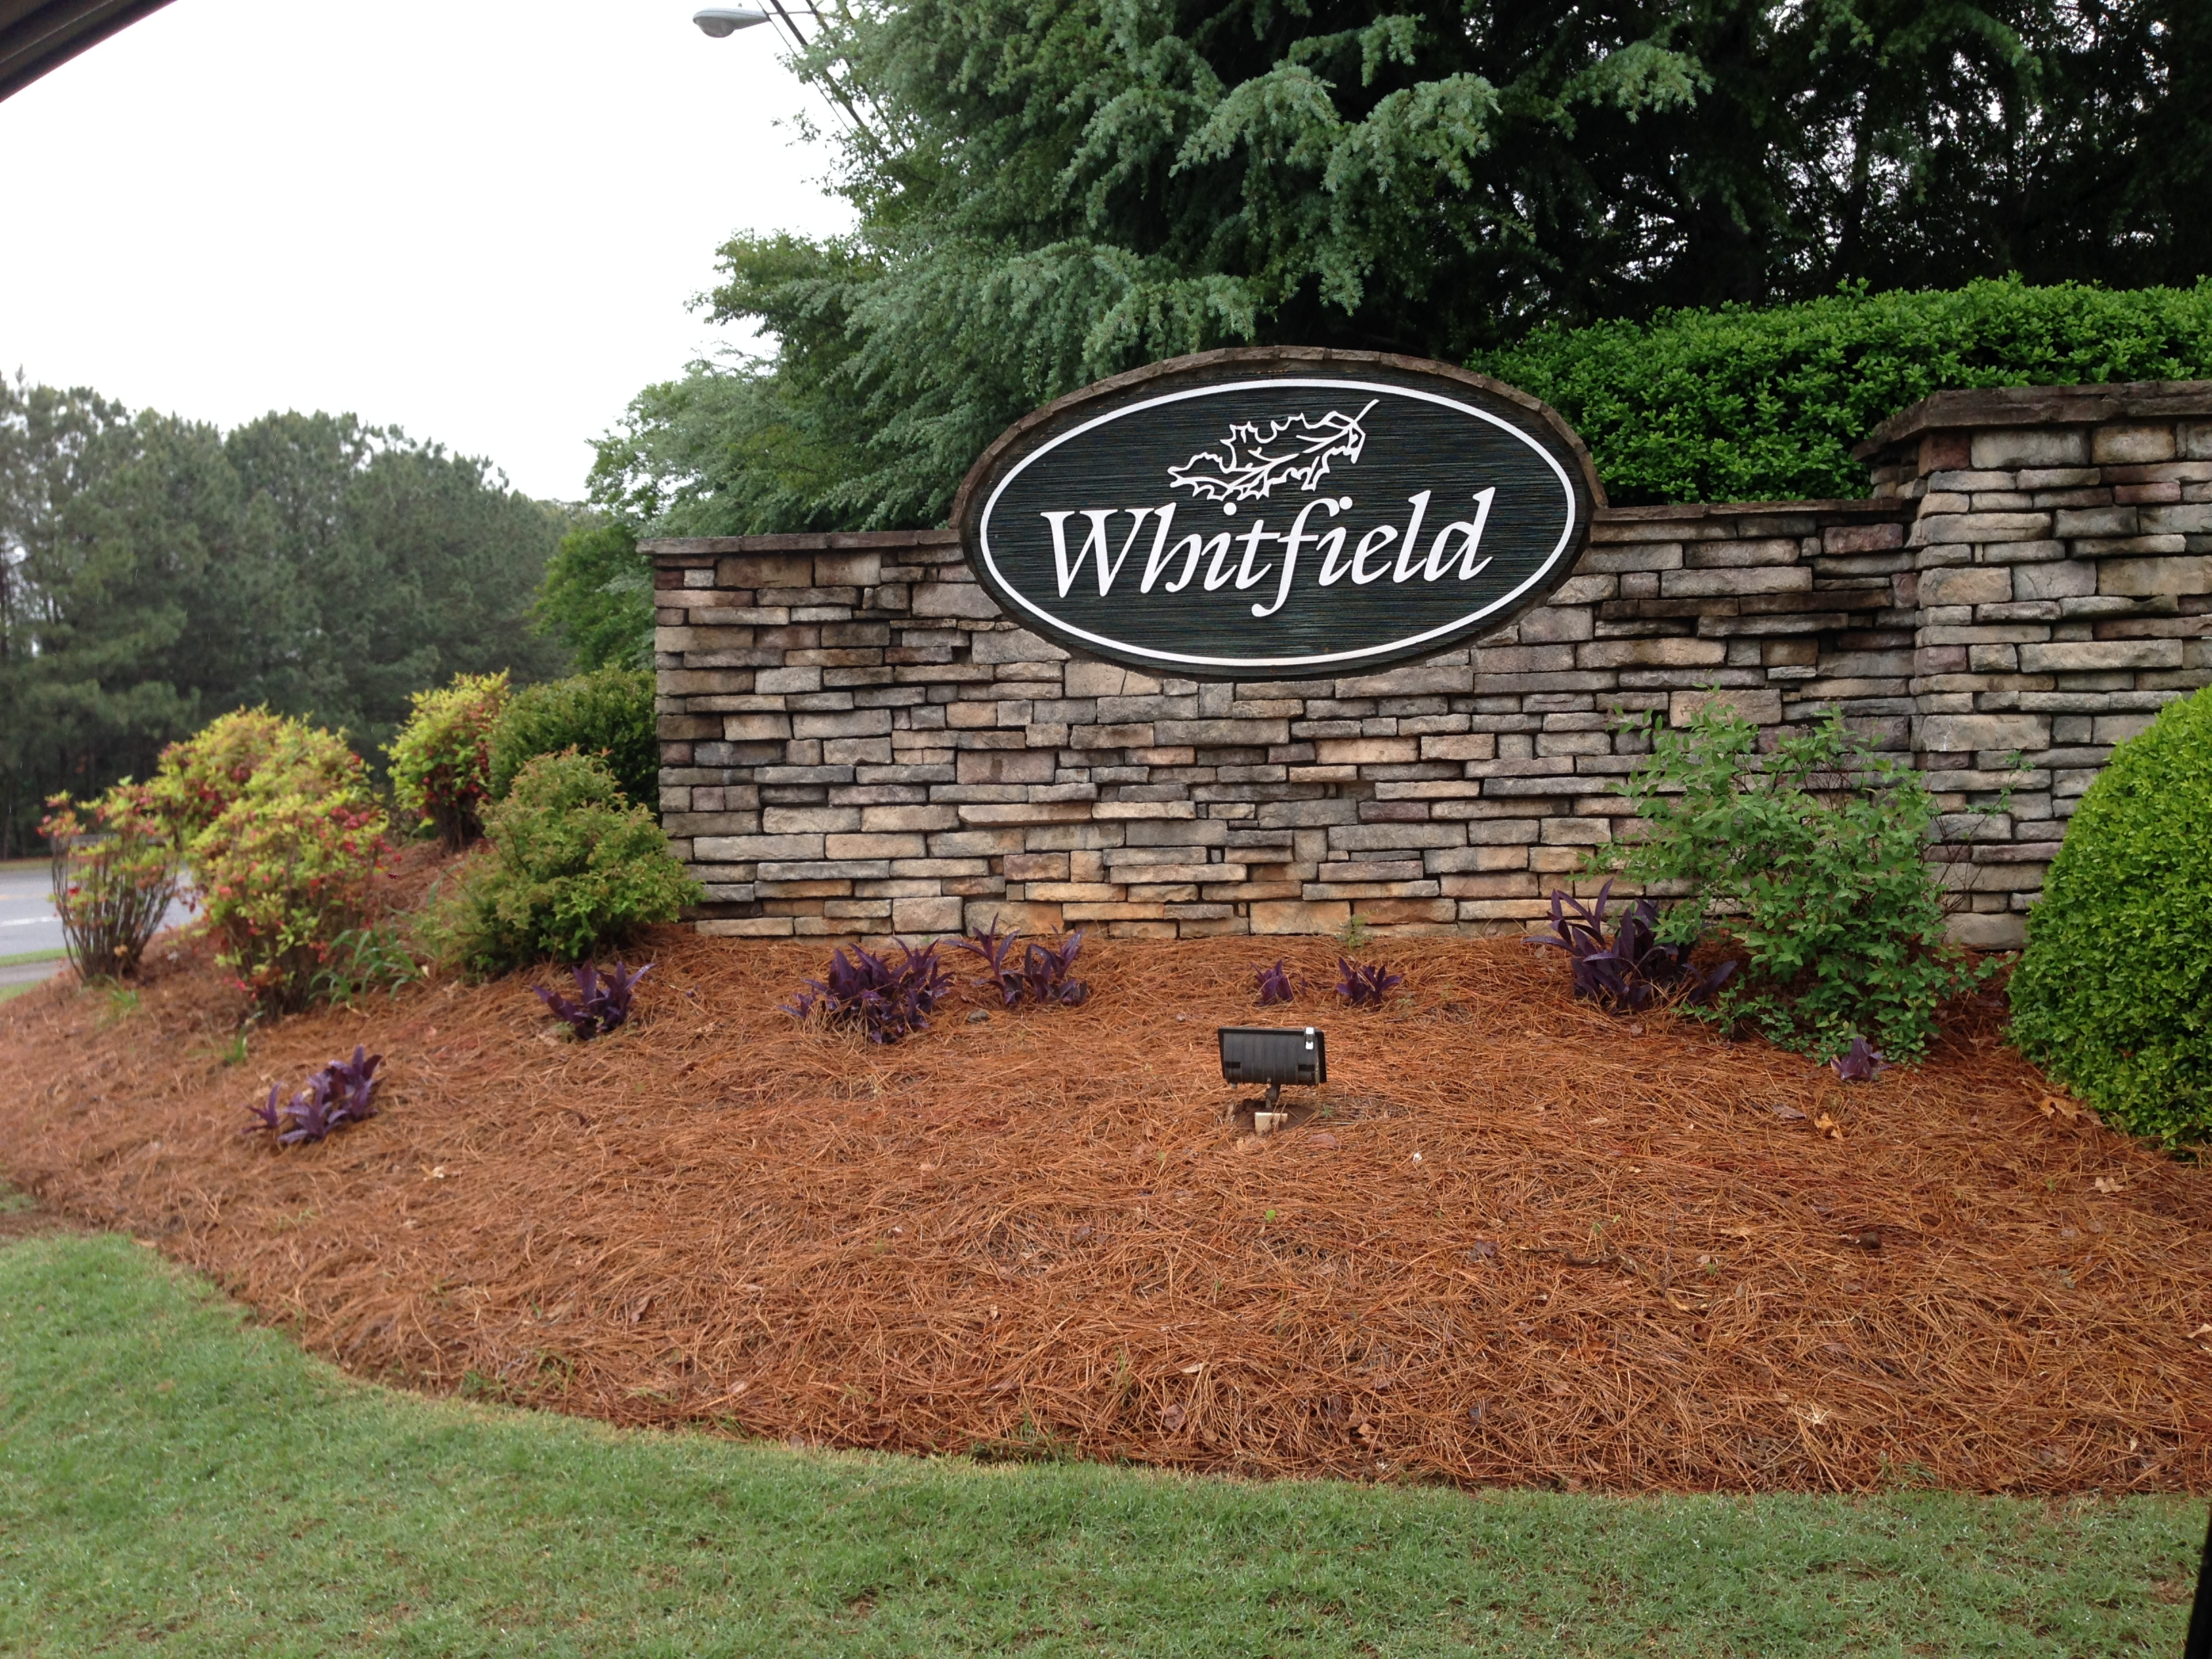 Homes for Sale in Whitfield Marietta - Janice Overbeck Real Estate Team